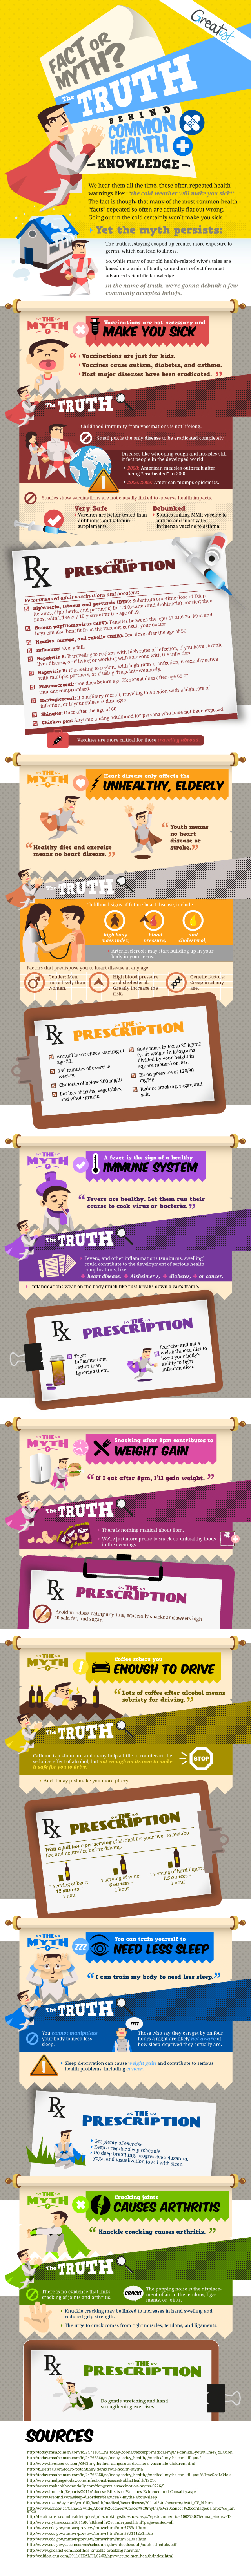 Myths about Health Knowledge